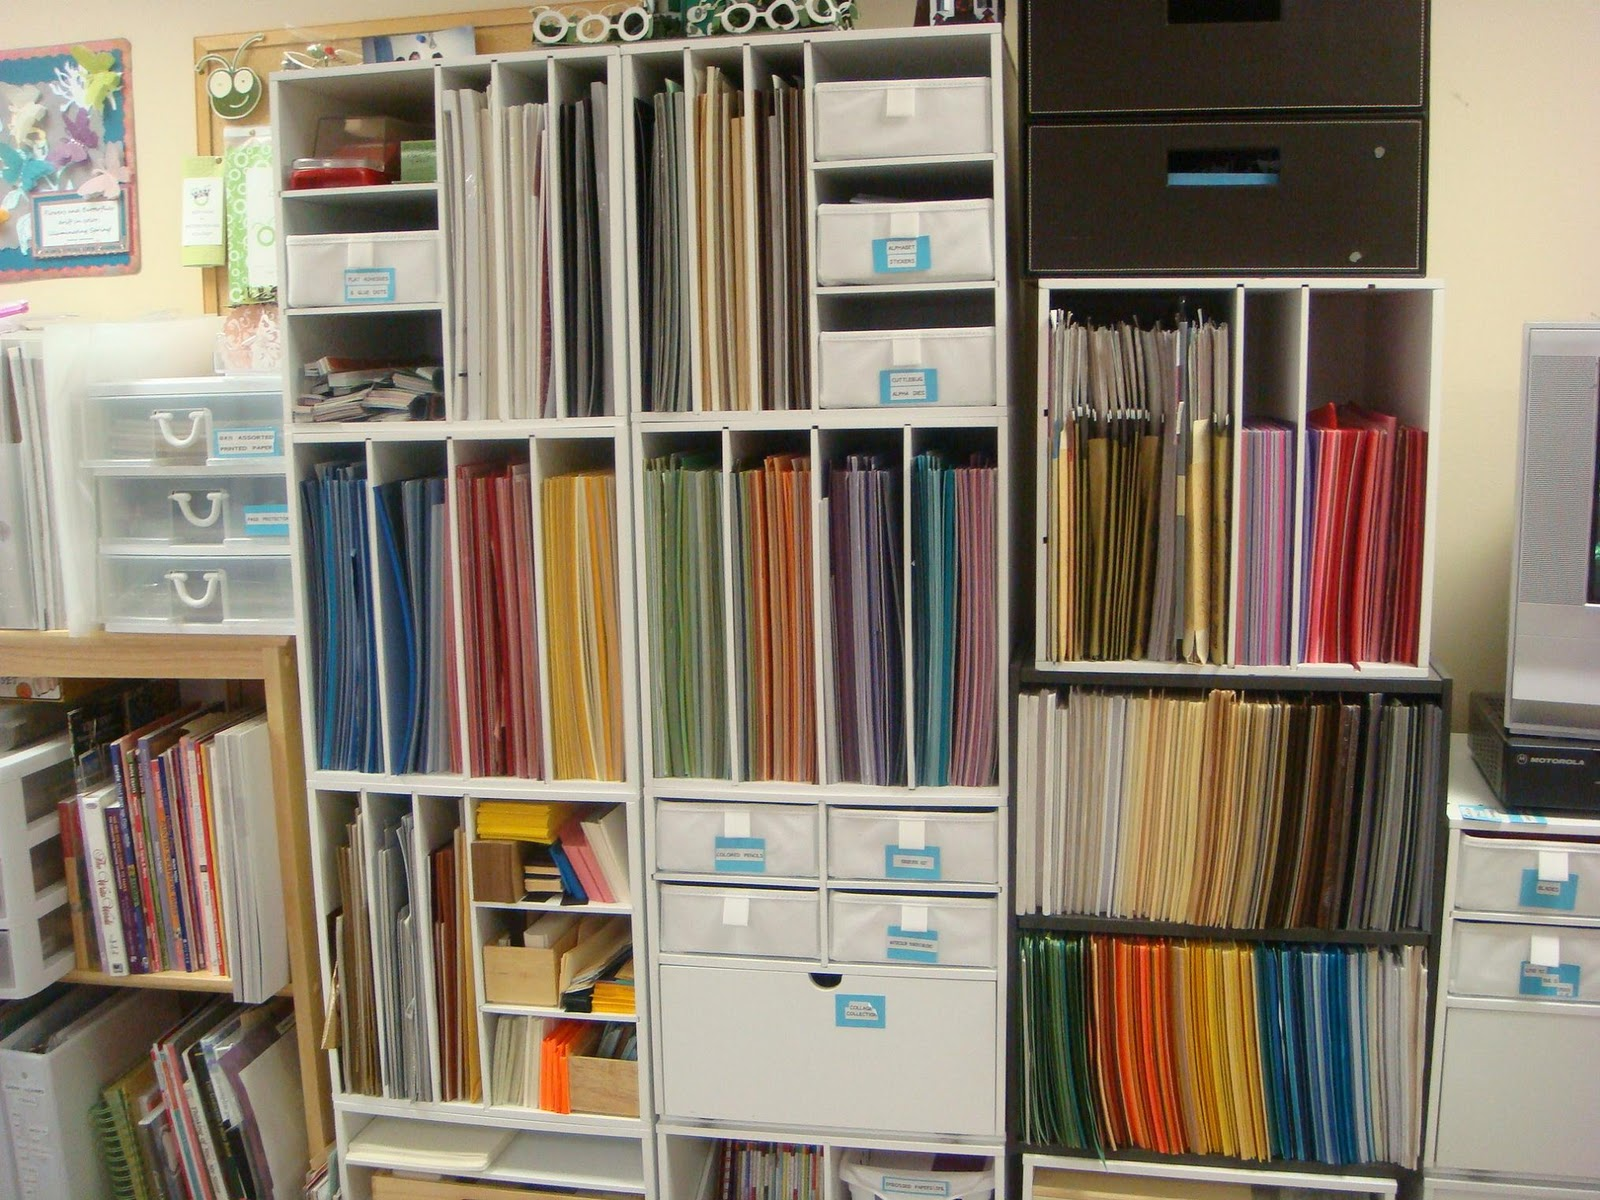 carolyn 39 s creative corner craft room organization 2012 On craft paper storage ideas